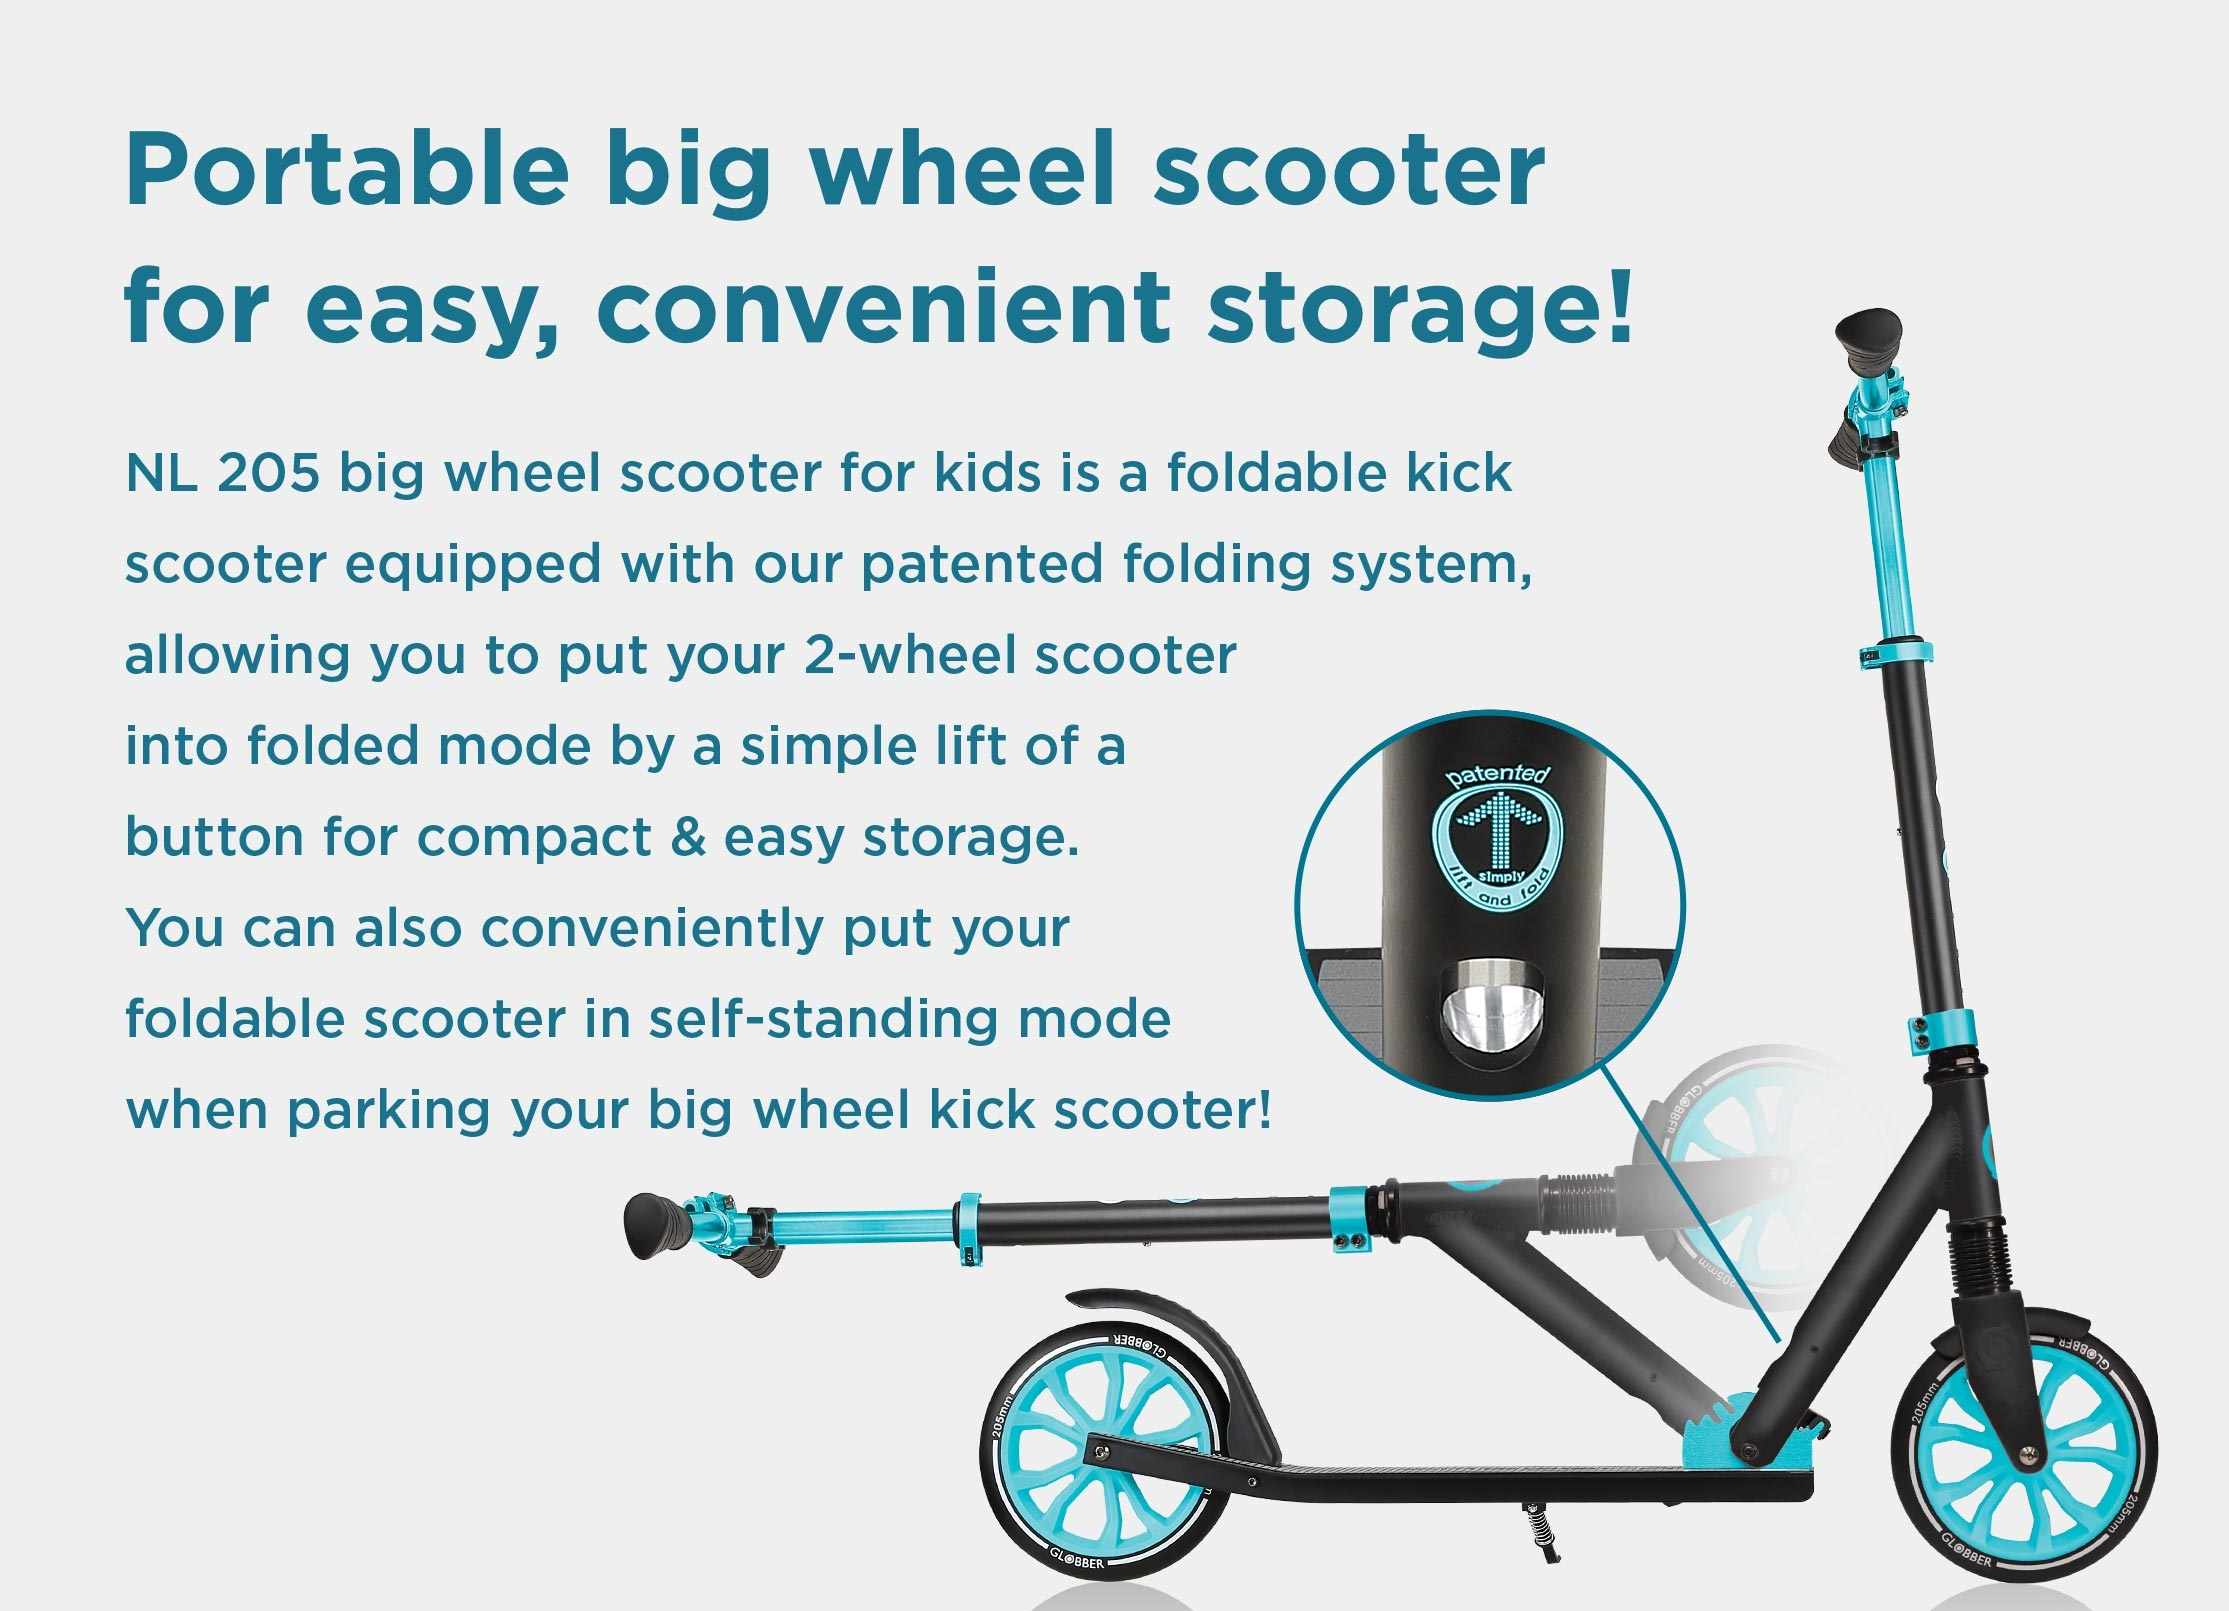 Best big wheel scooter for kids that's easy to carry around and store